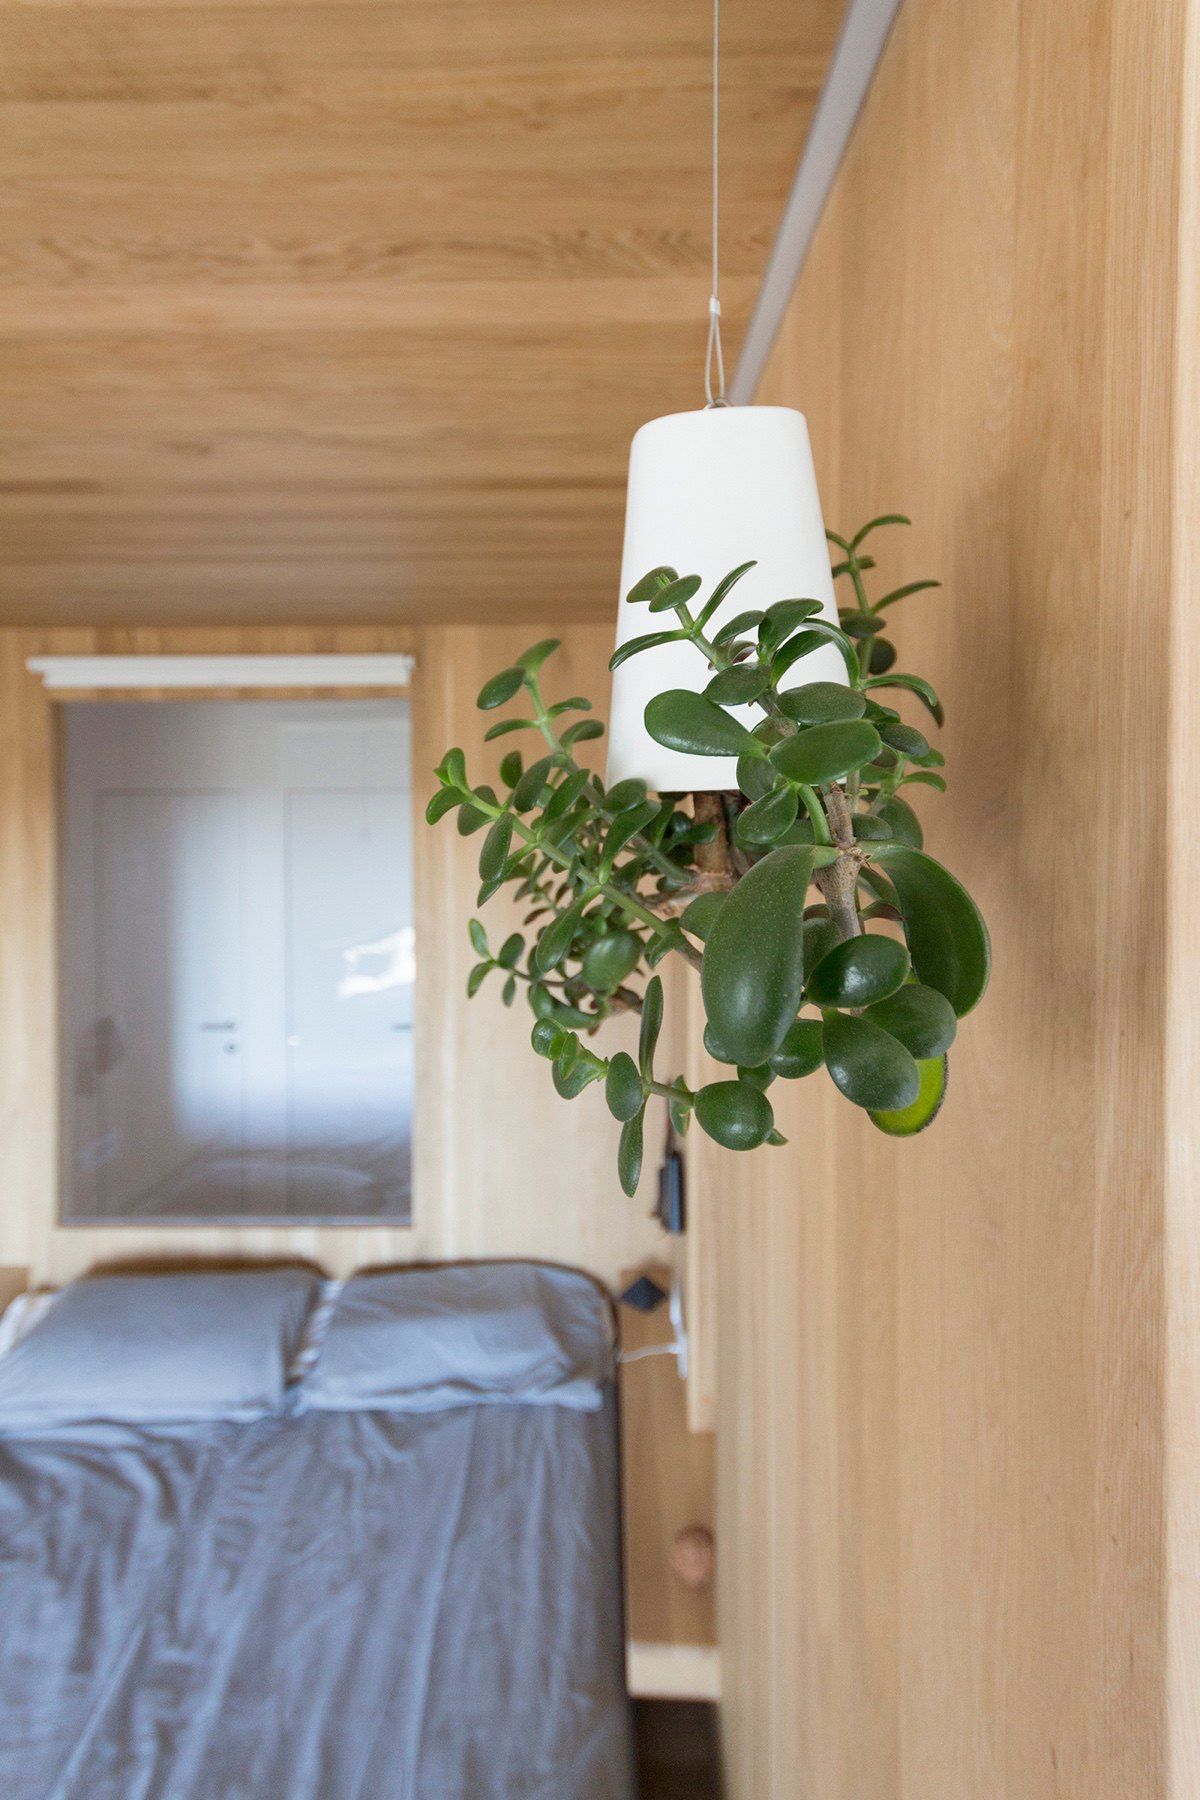 Bedroom Living Light White Cone On Wooden Wall Original Adds Character - Super small studio apartment under 50 square meters includes floor plan